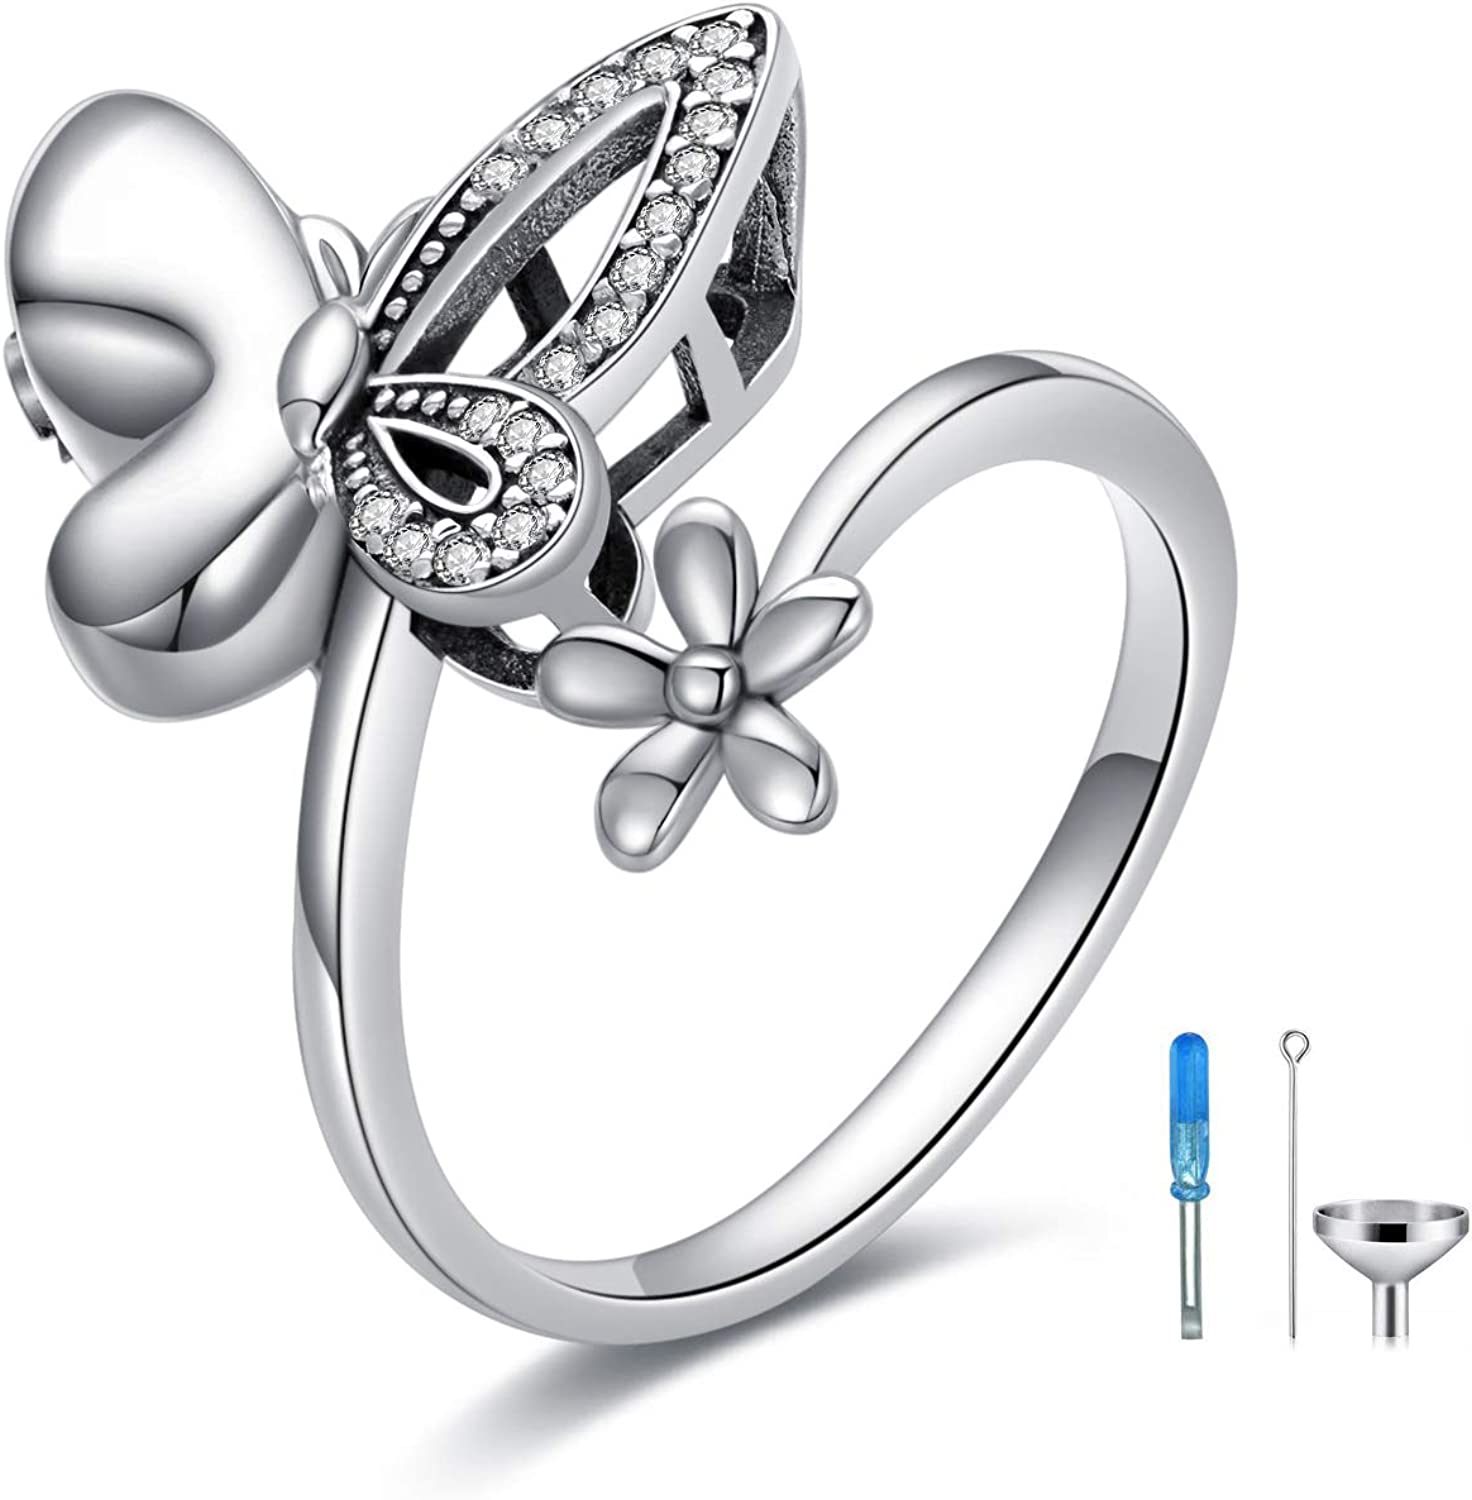 Butterfly online shop Cremation Ring for Ashes 925 Open Ranking TOP15 Sterling Urn Silver